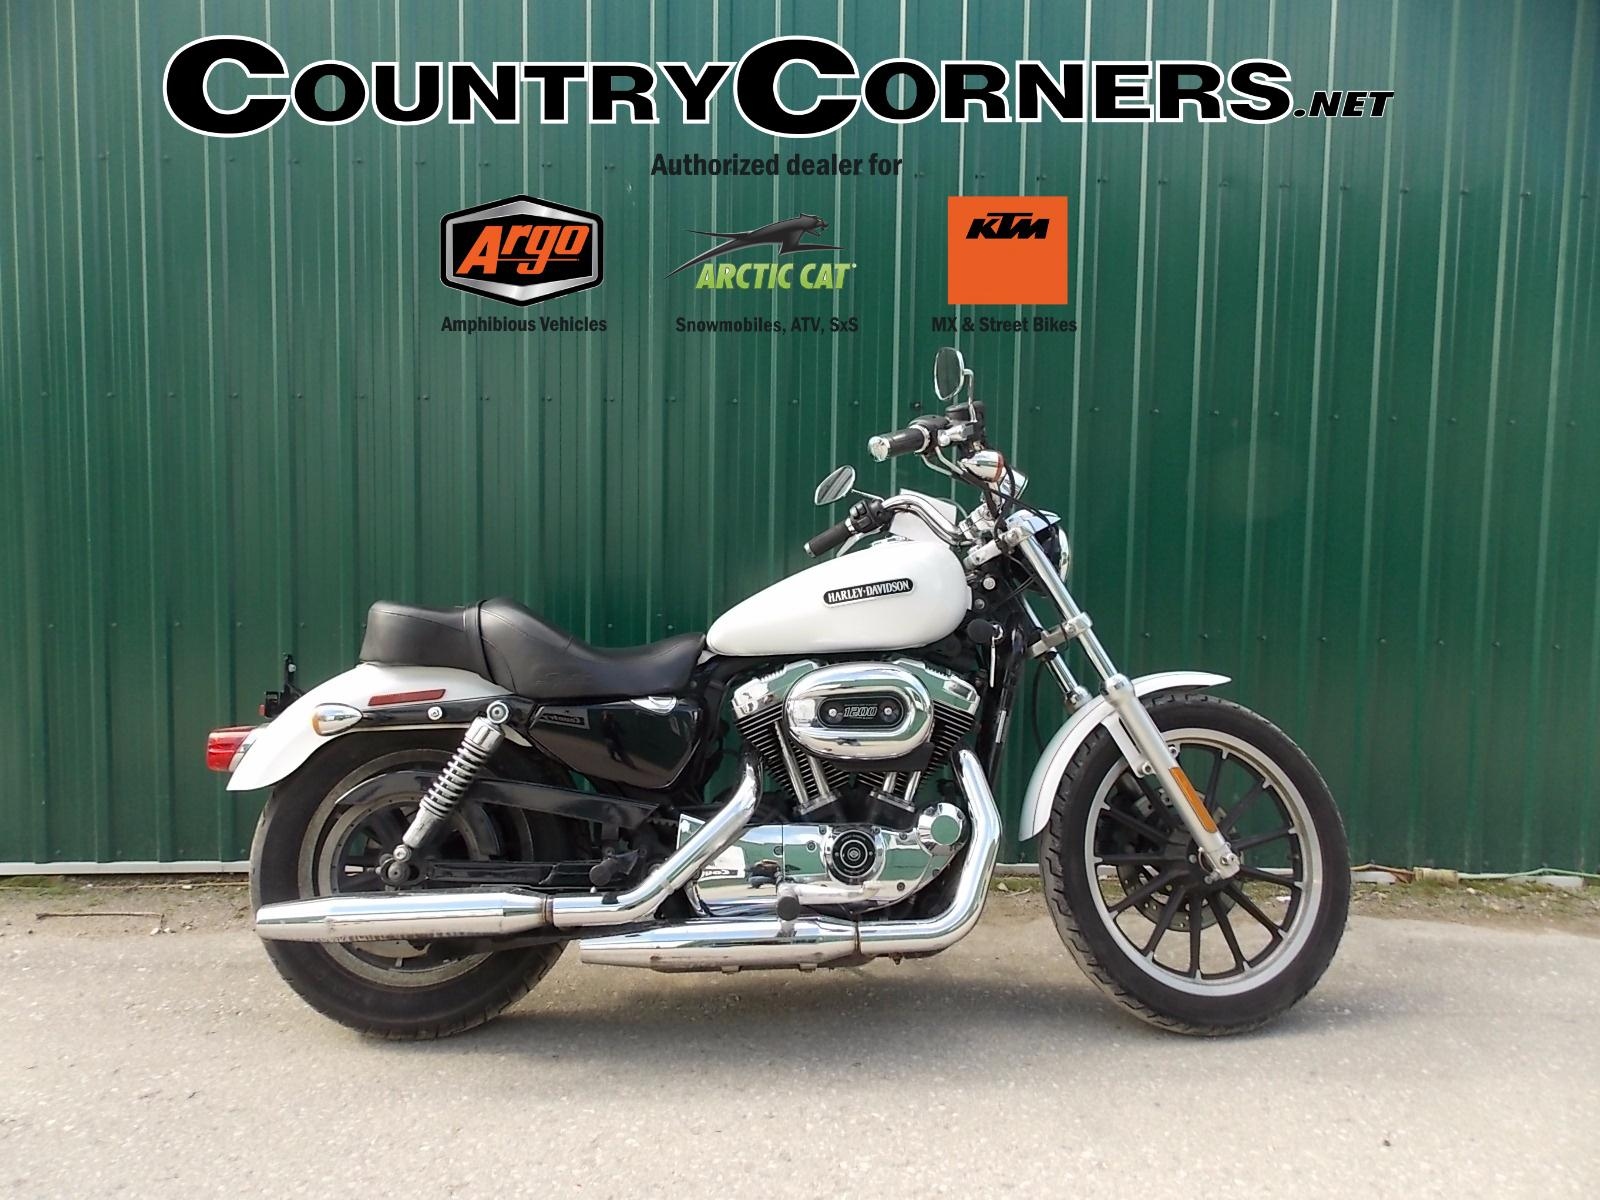 hight resolution of 2007 harley davidson xl1200 sportster country corners